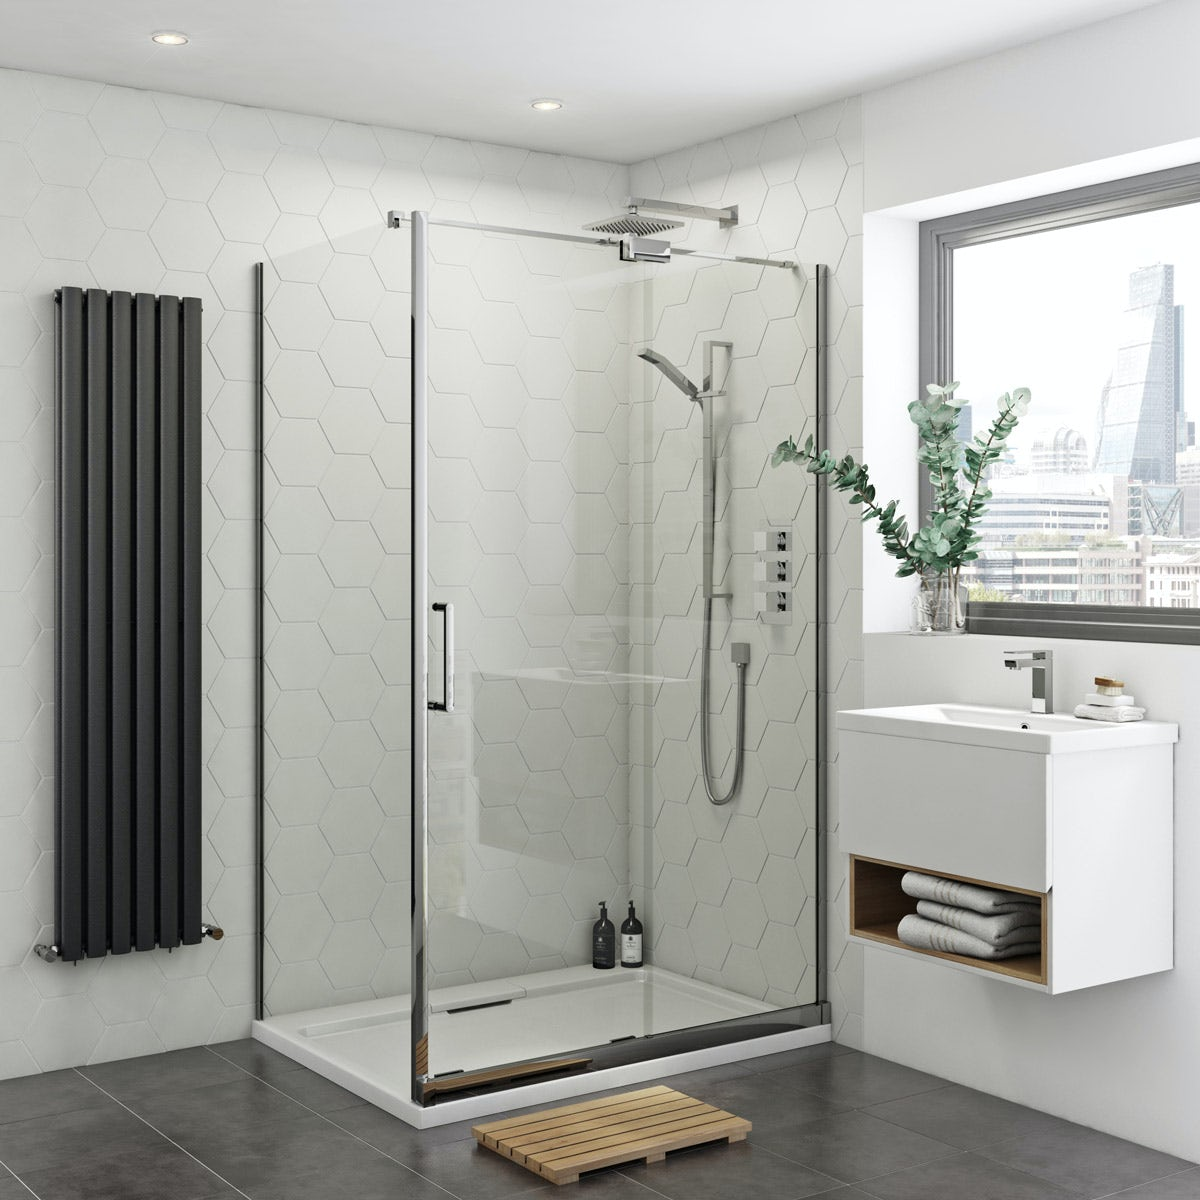 Mode Ellis 8mm easy clean right handed rectangular frameless sliding shower enclosure